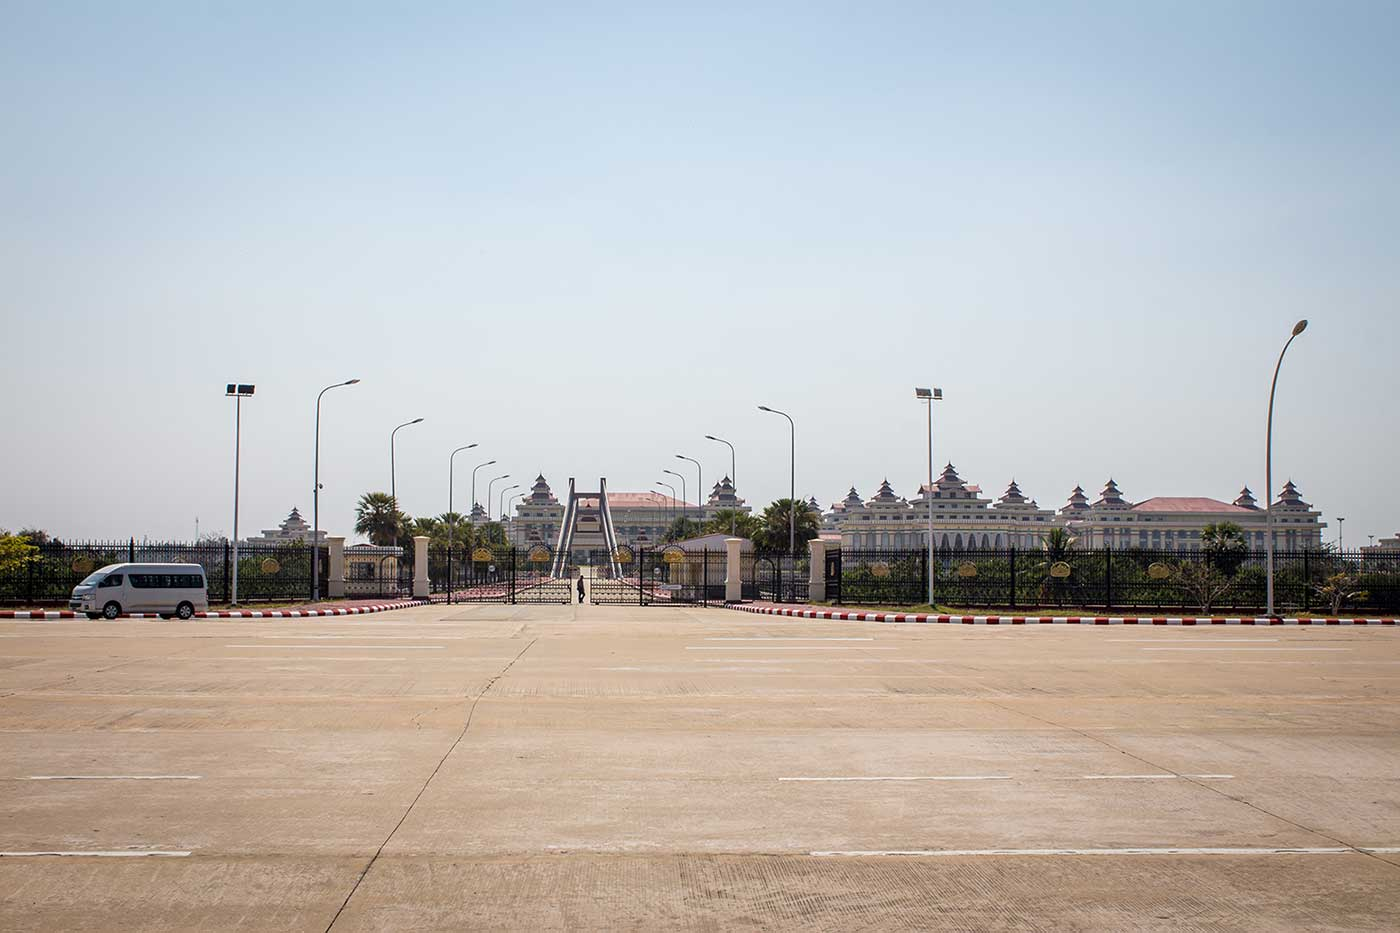 Pyidaungsu Hluttaw is Myanmar's parliament complex. It consists of 31 halls and a 100-room palace, located in the Ministry Zone of Naypyidaw.